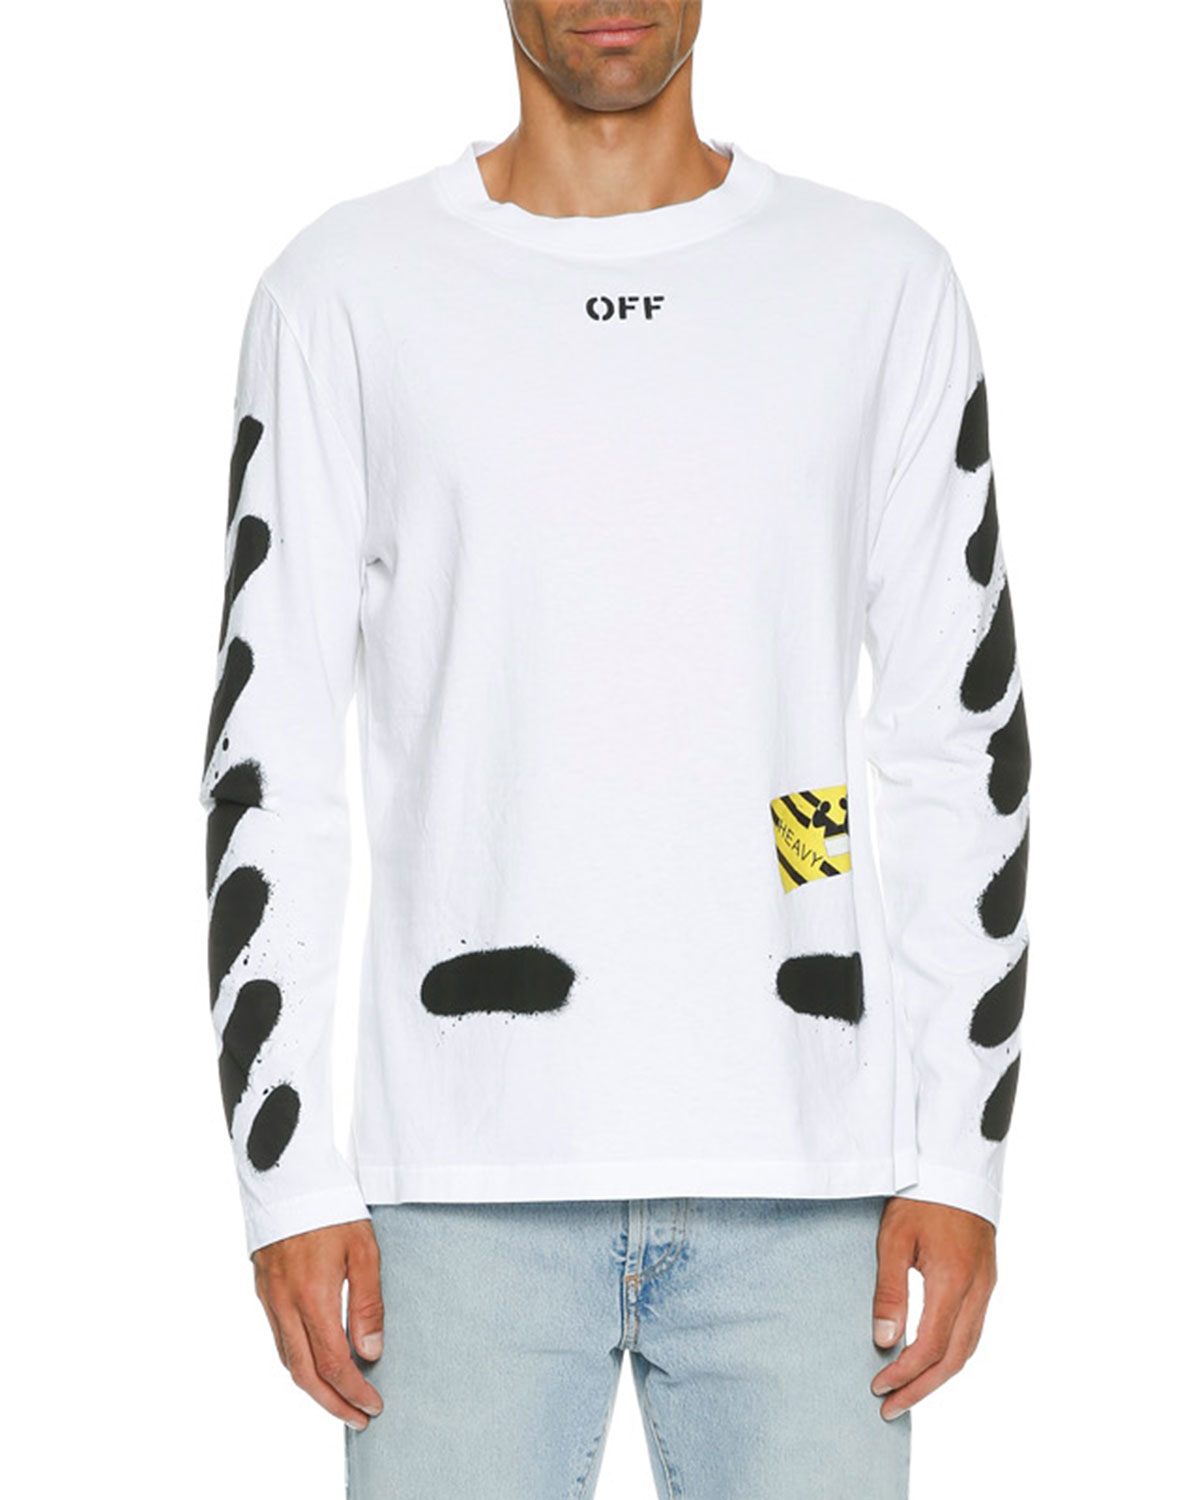 6489deeca Off-White Spray-Paint Logo Long-Sleeve T-Shirt, White/Black | Neiman ...